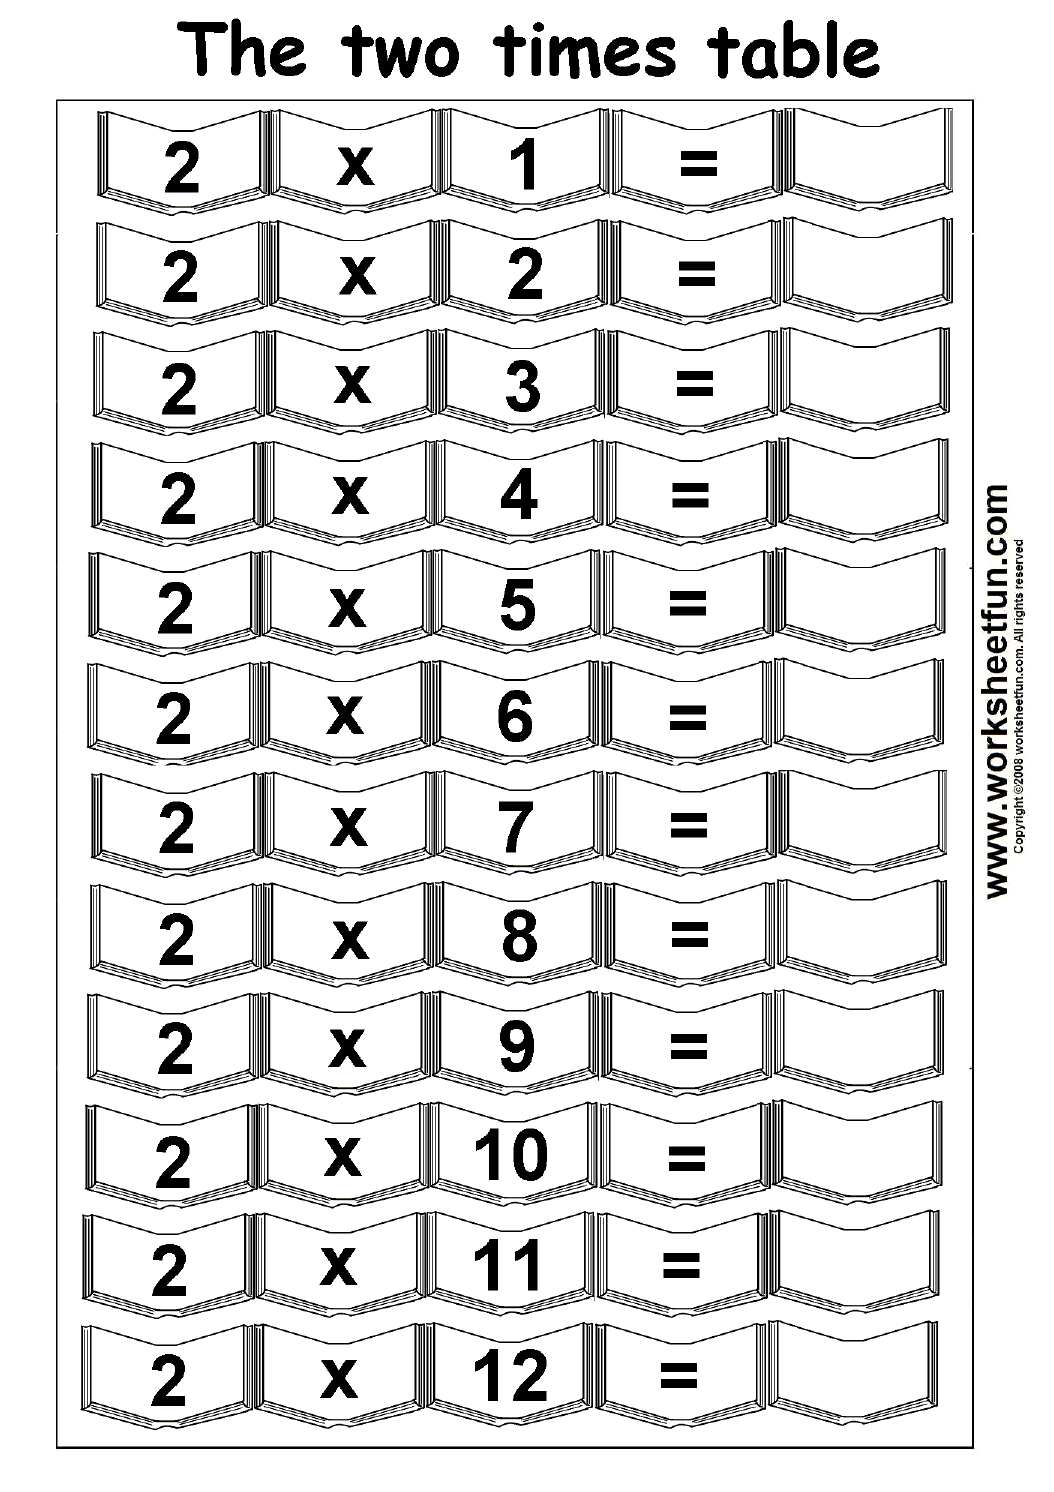 worksheet 4 Times Table Worksheet multiplication times tables worksheets 2 3 4 5 table